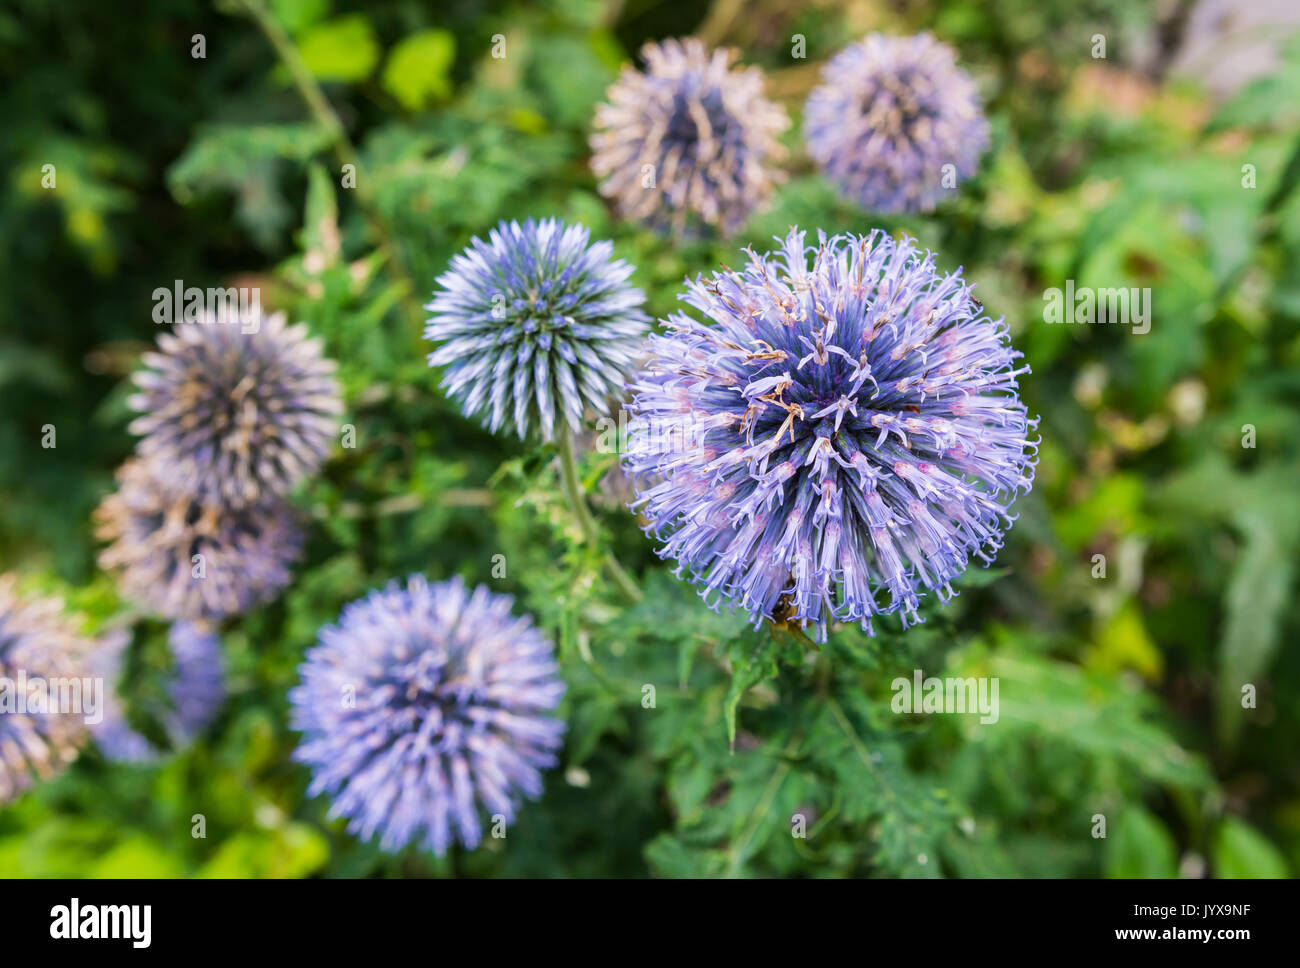 Echinops ritro plant, also known as Southern globethistle, a perennial thistle growing in Summer in West Sussex, England, UK. Globe Thistle. - Stock Image